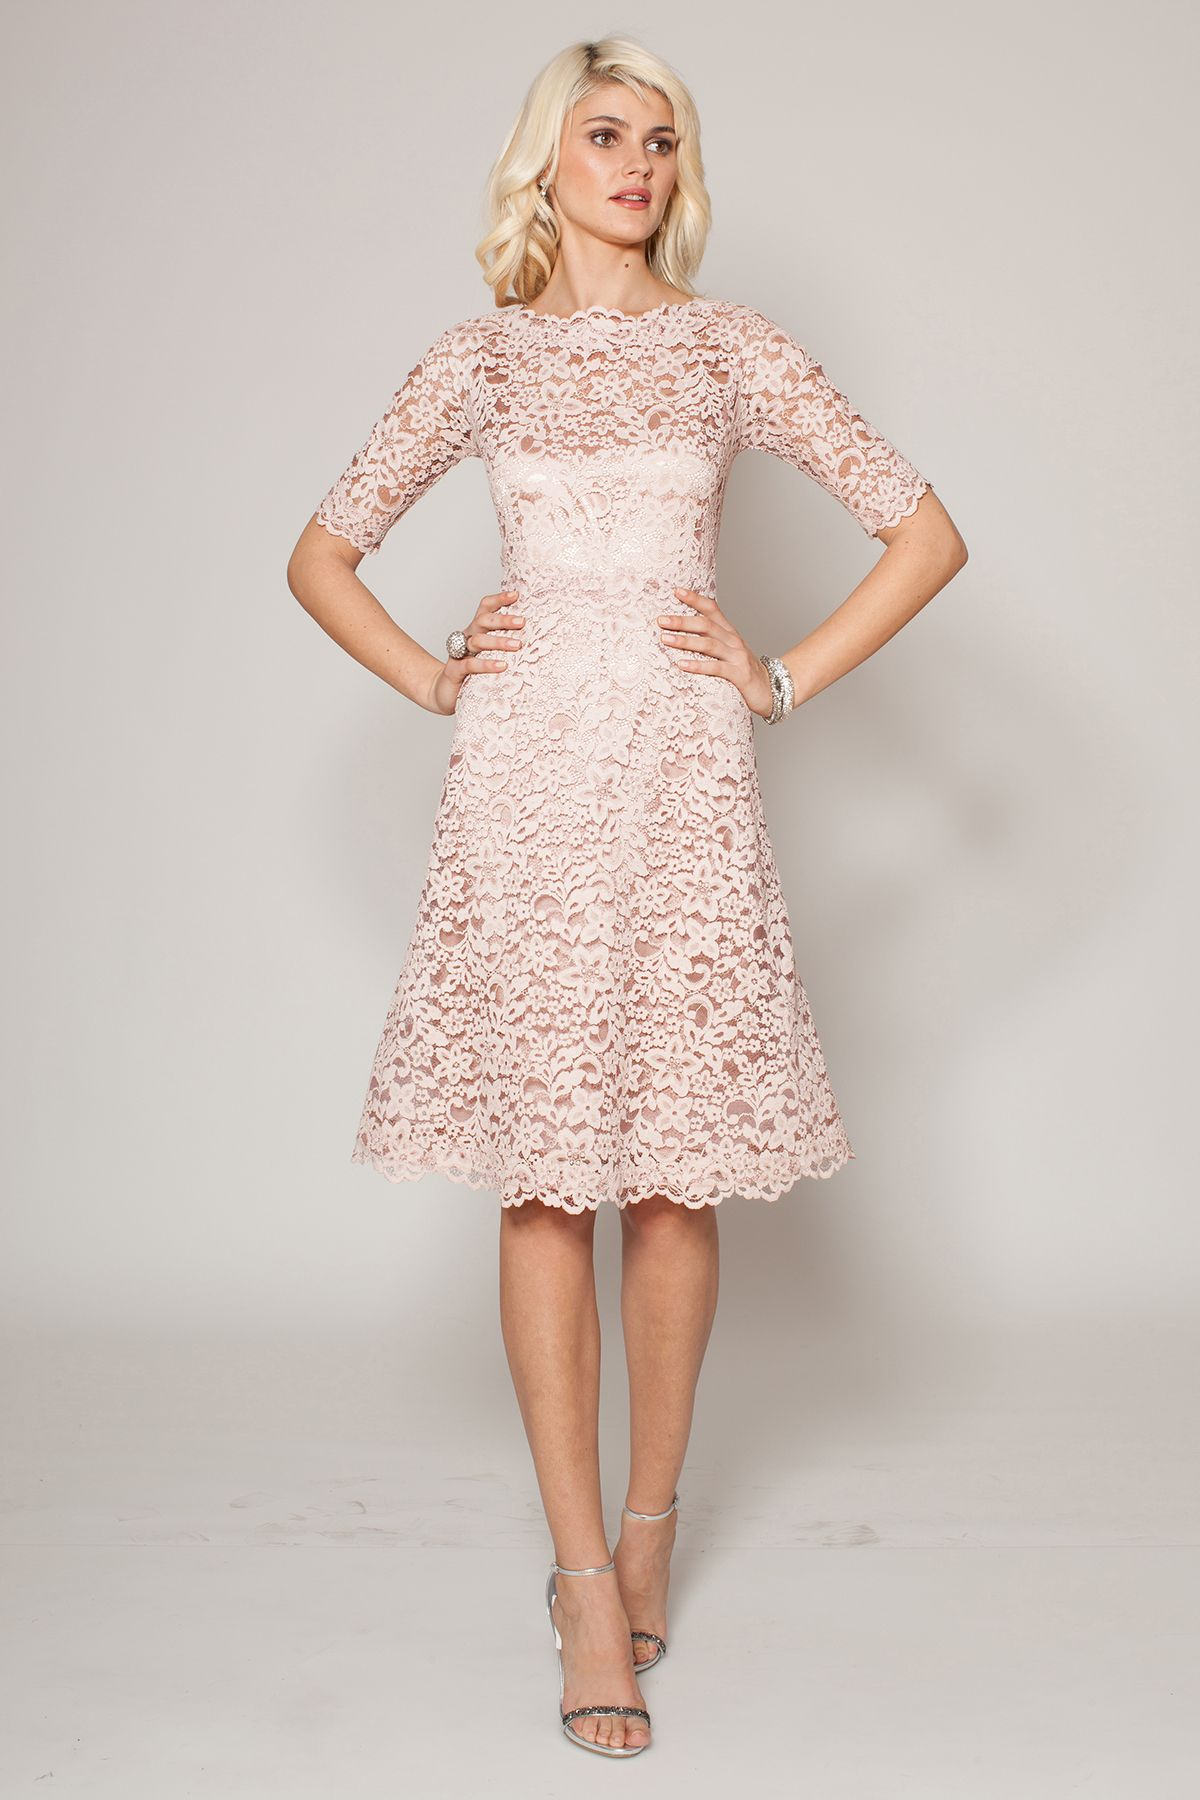 Pink-Lace-Cocktail-Dress-in-Trends-For-Fall- | Lace Cocktail Dress ...